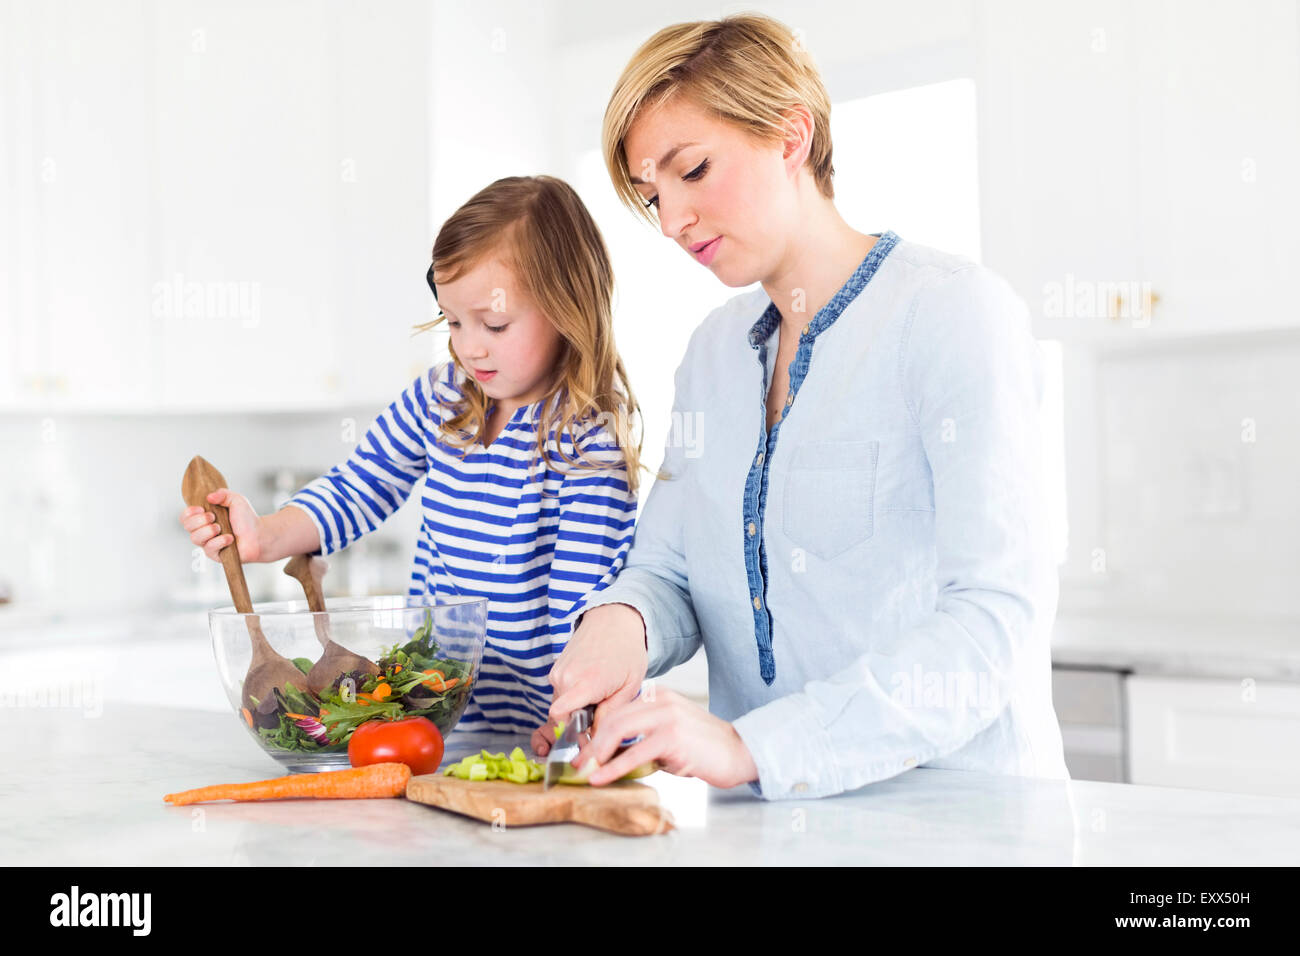 Mother and daughter (4-5) preparing salad - Stock Image